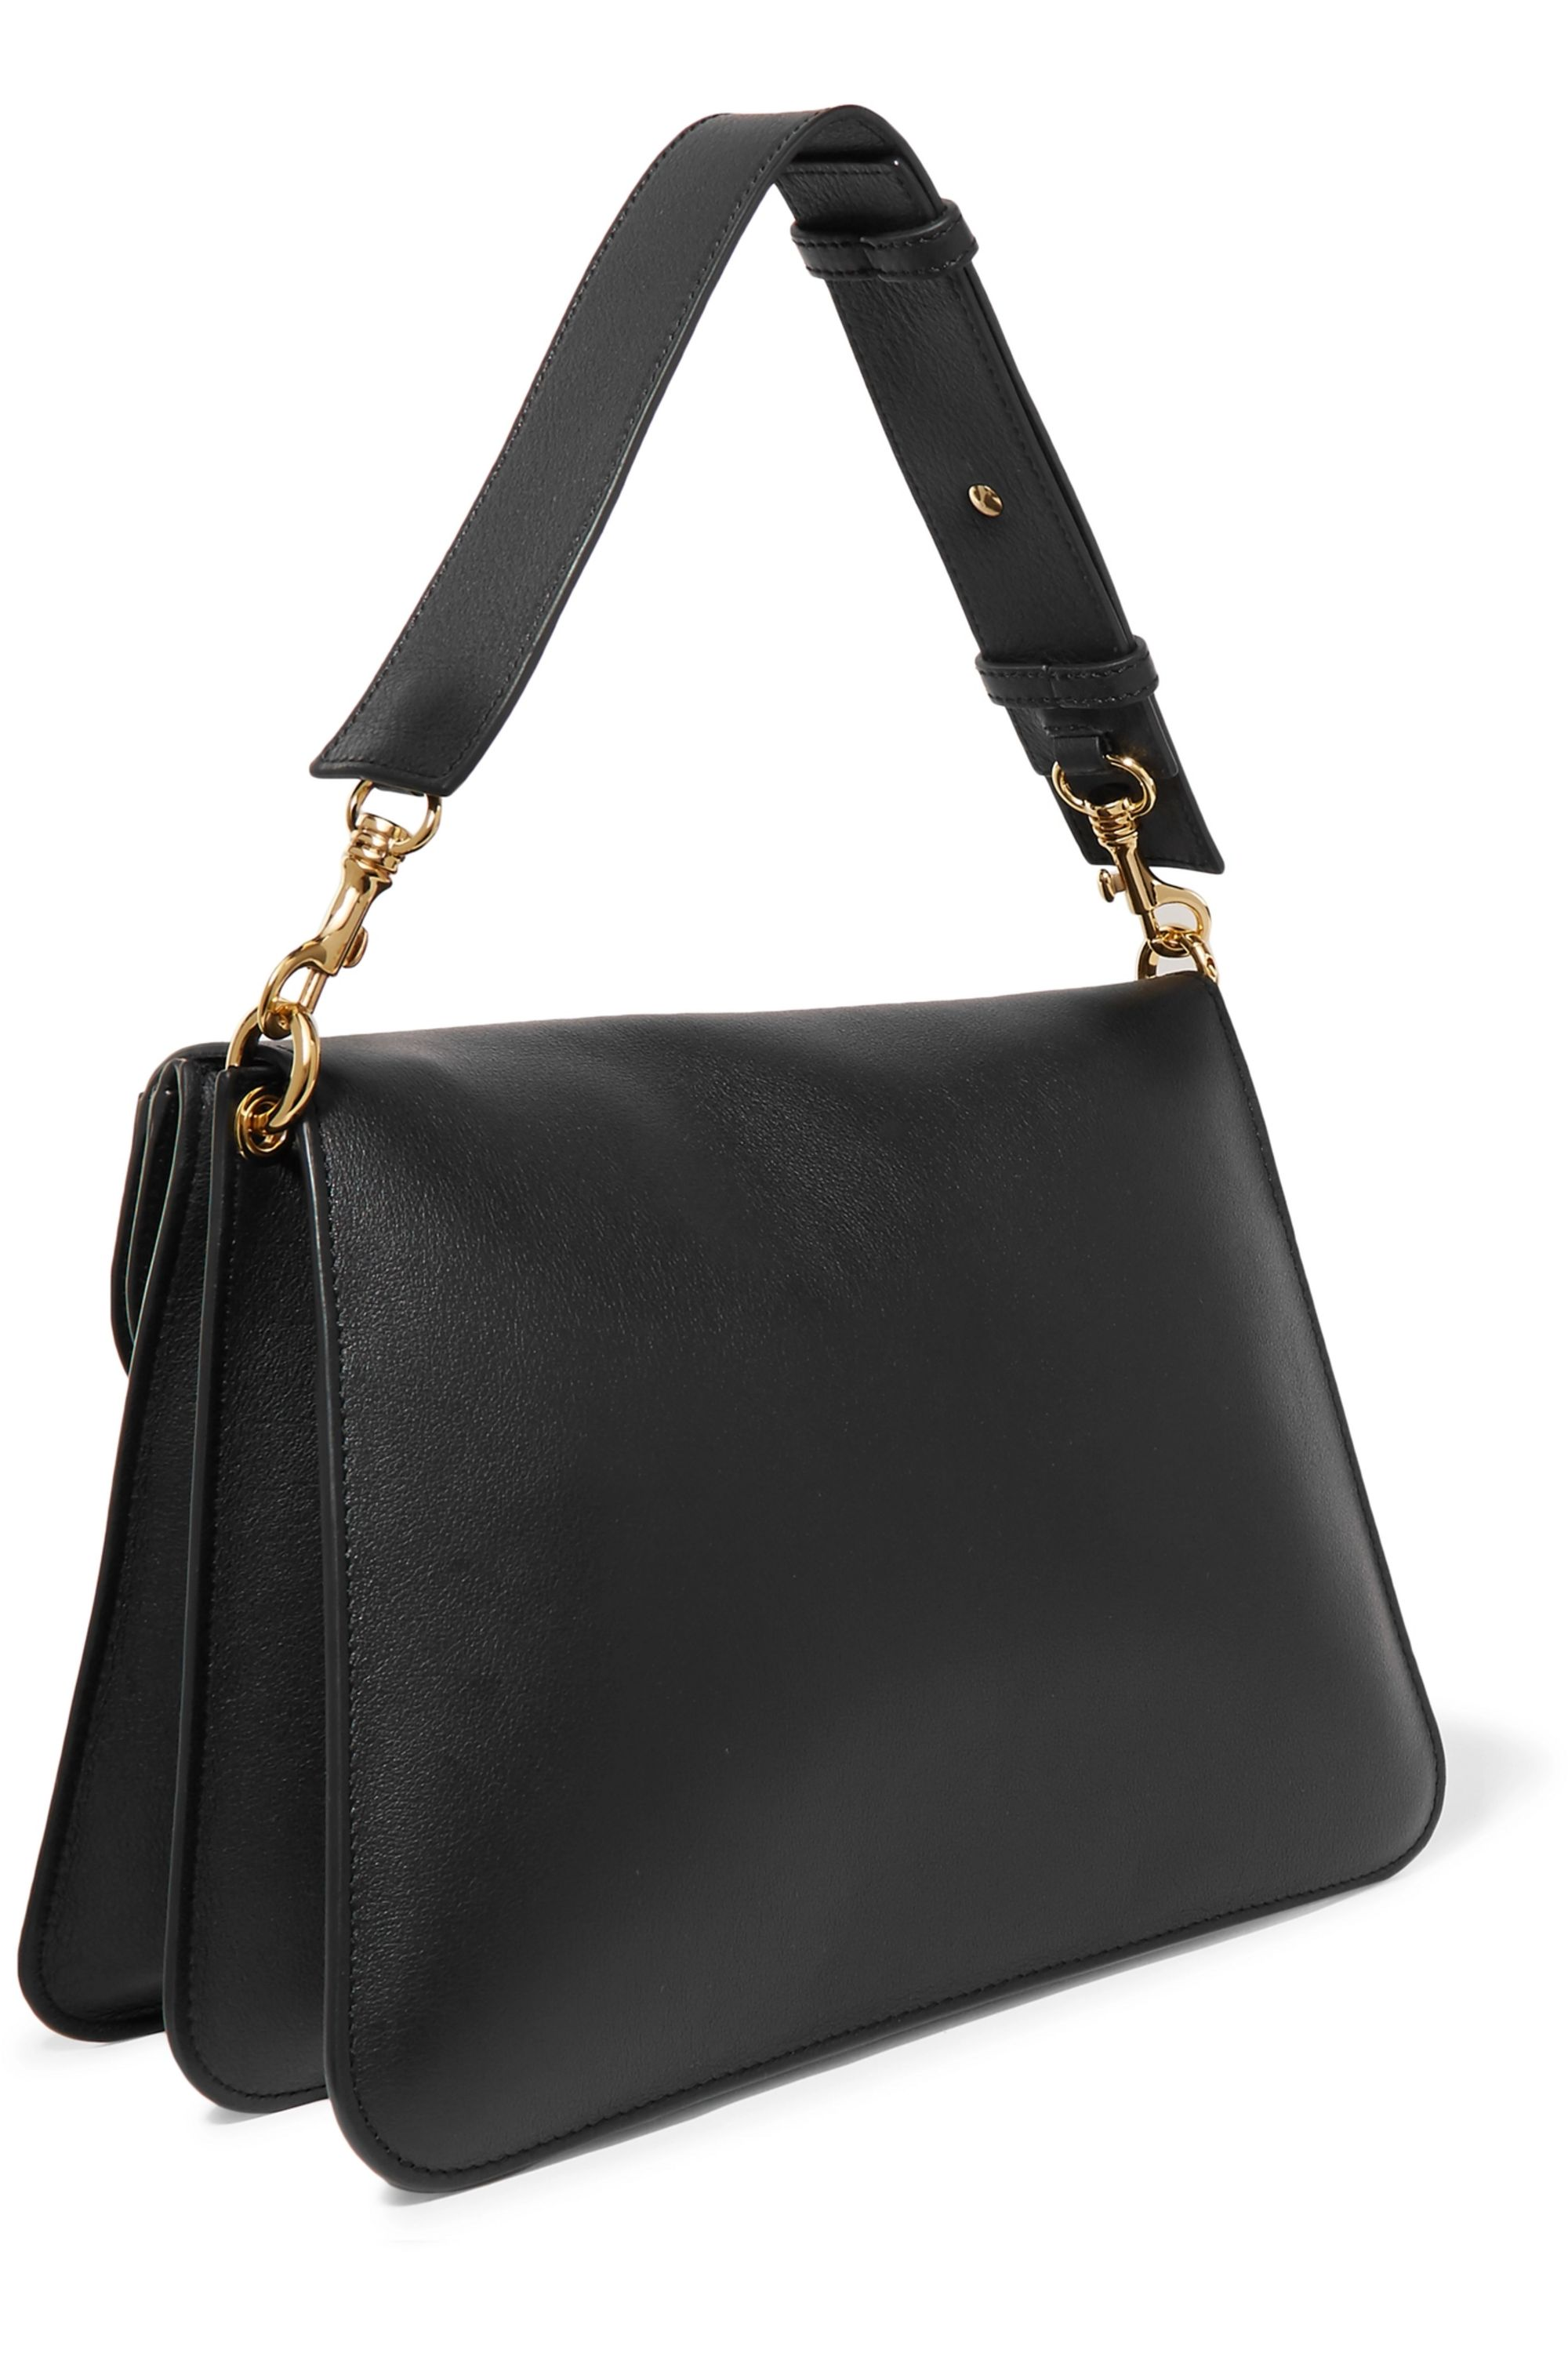 JW Anderson Pierce medium leather shoulder bag